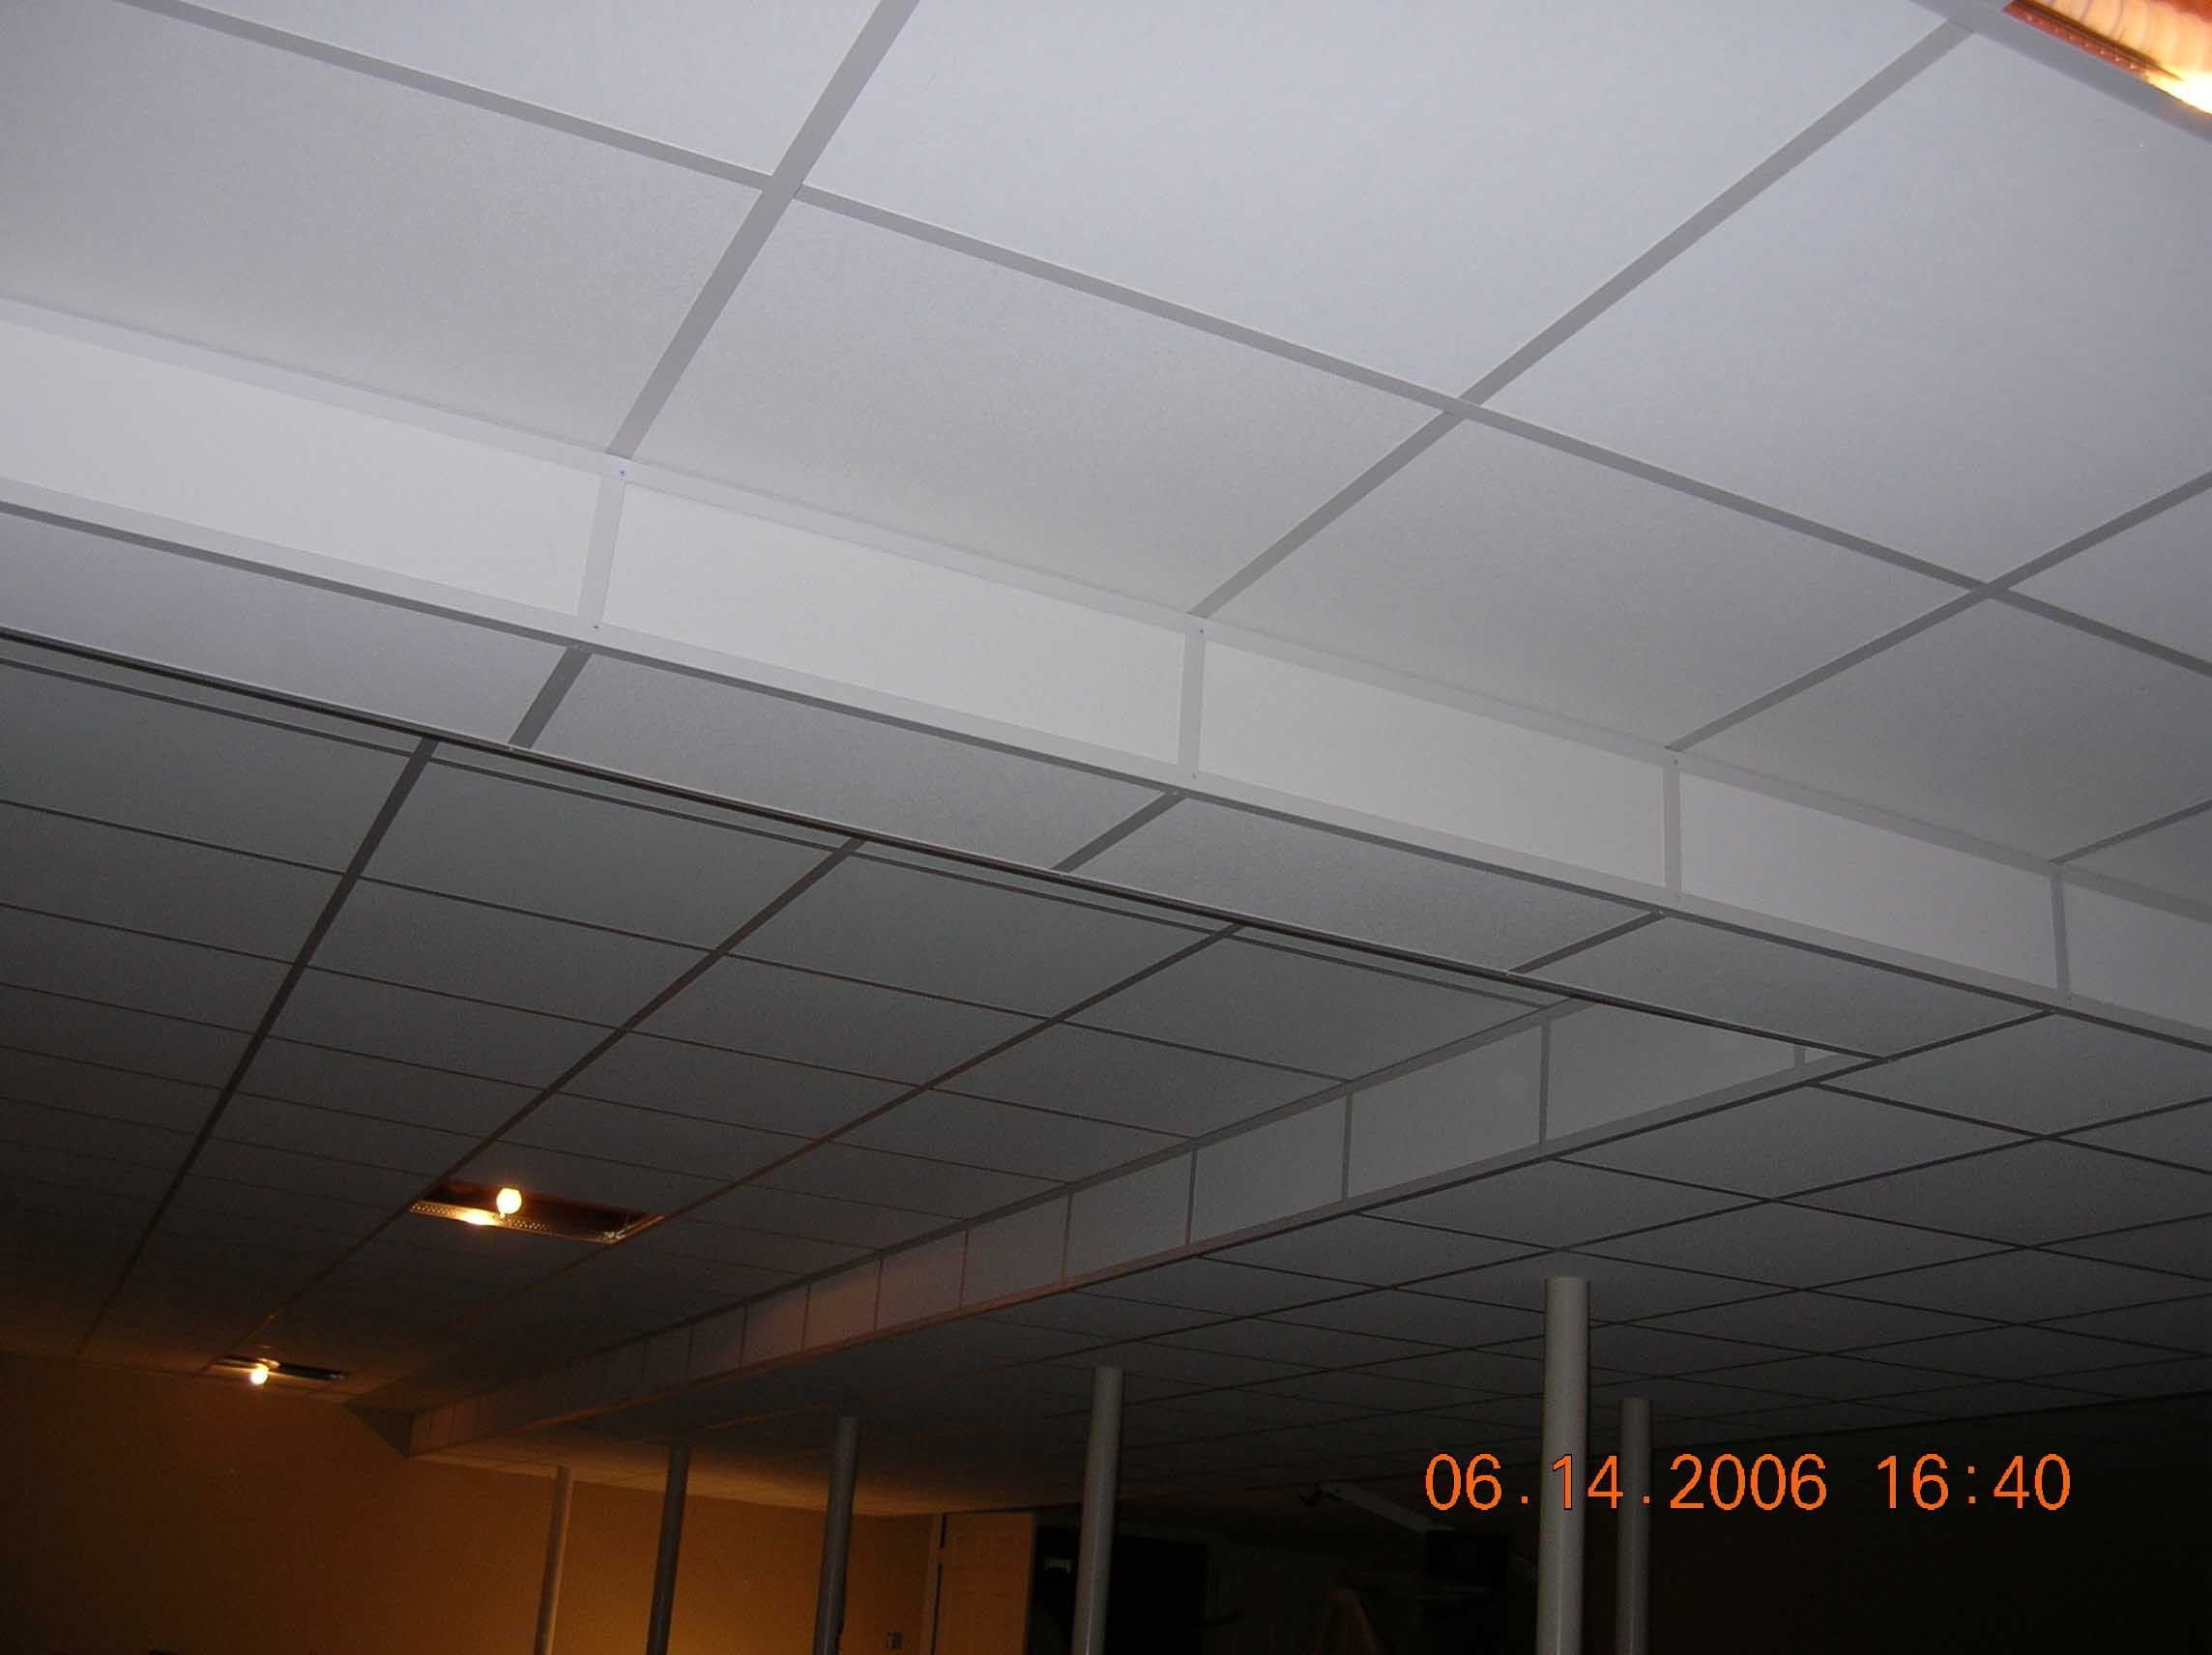 drop down co ceilings discount tulum s smsender types of it here ceiling tiles